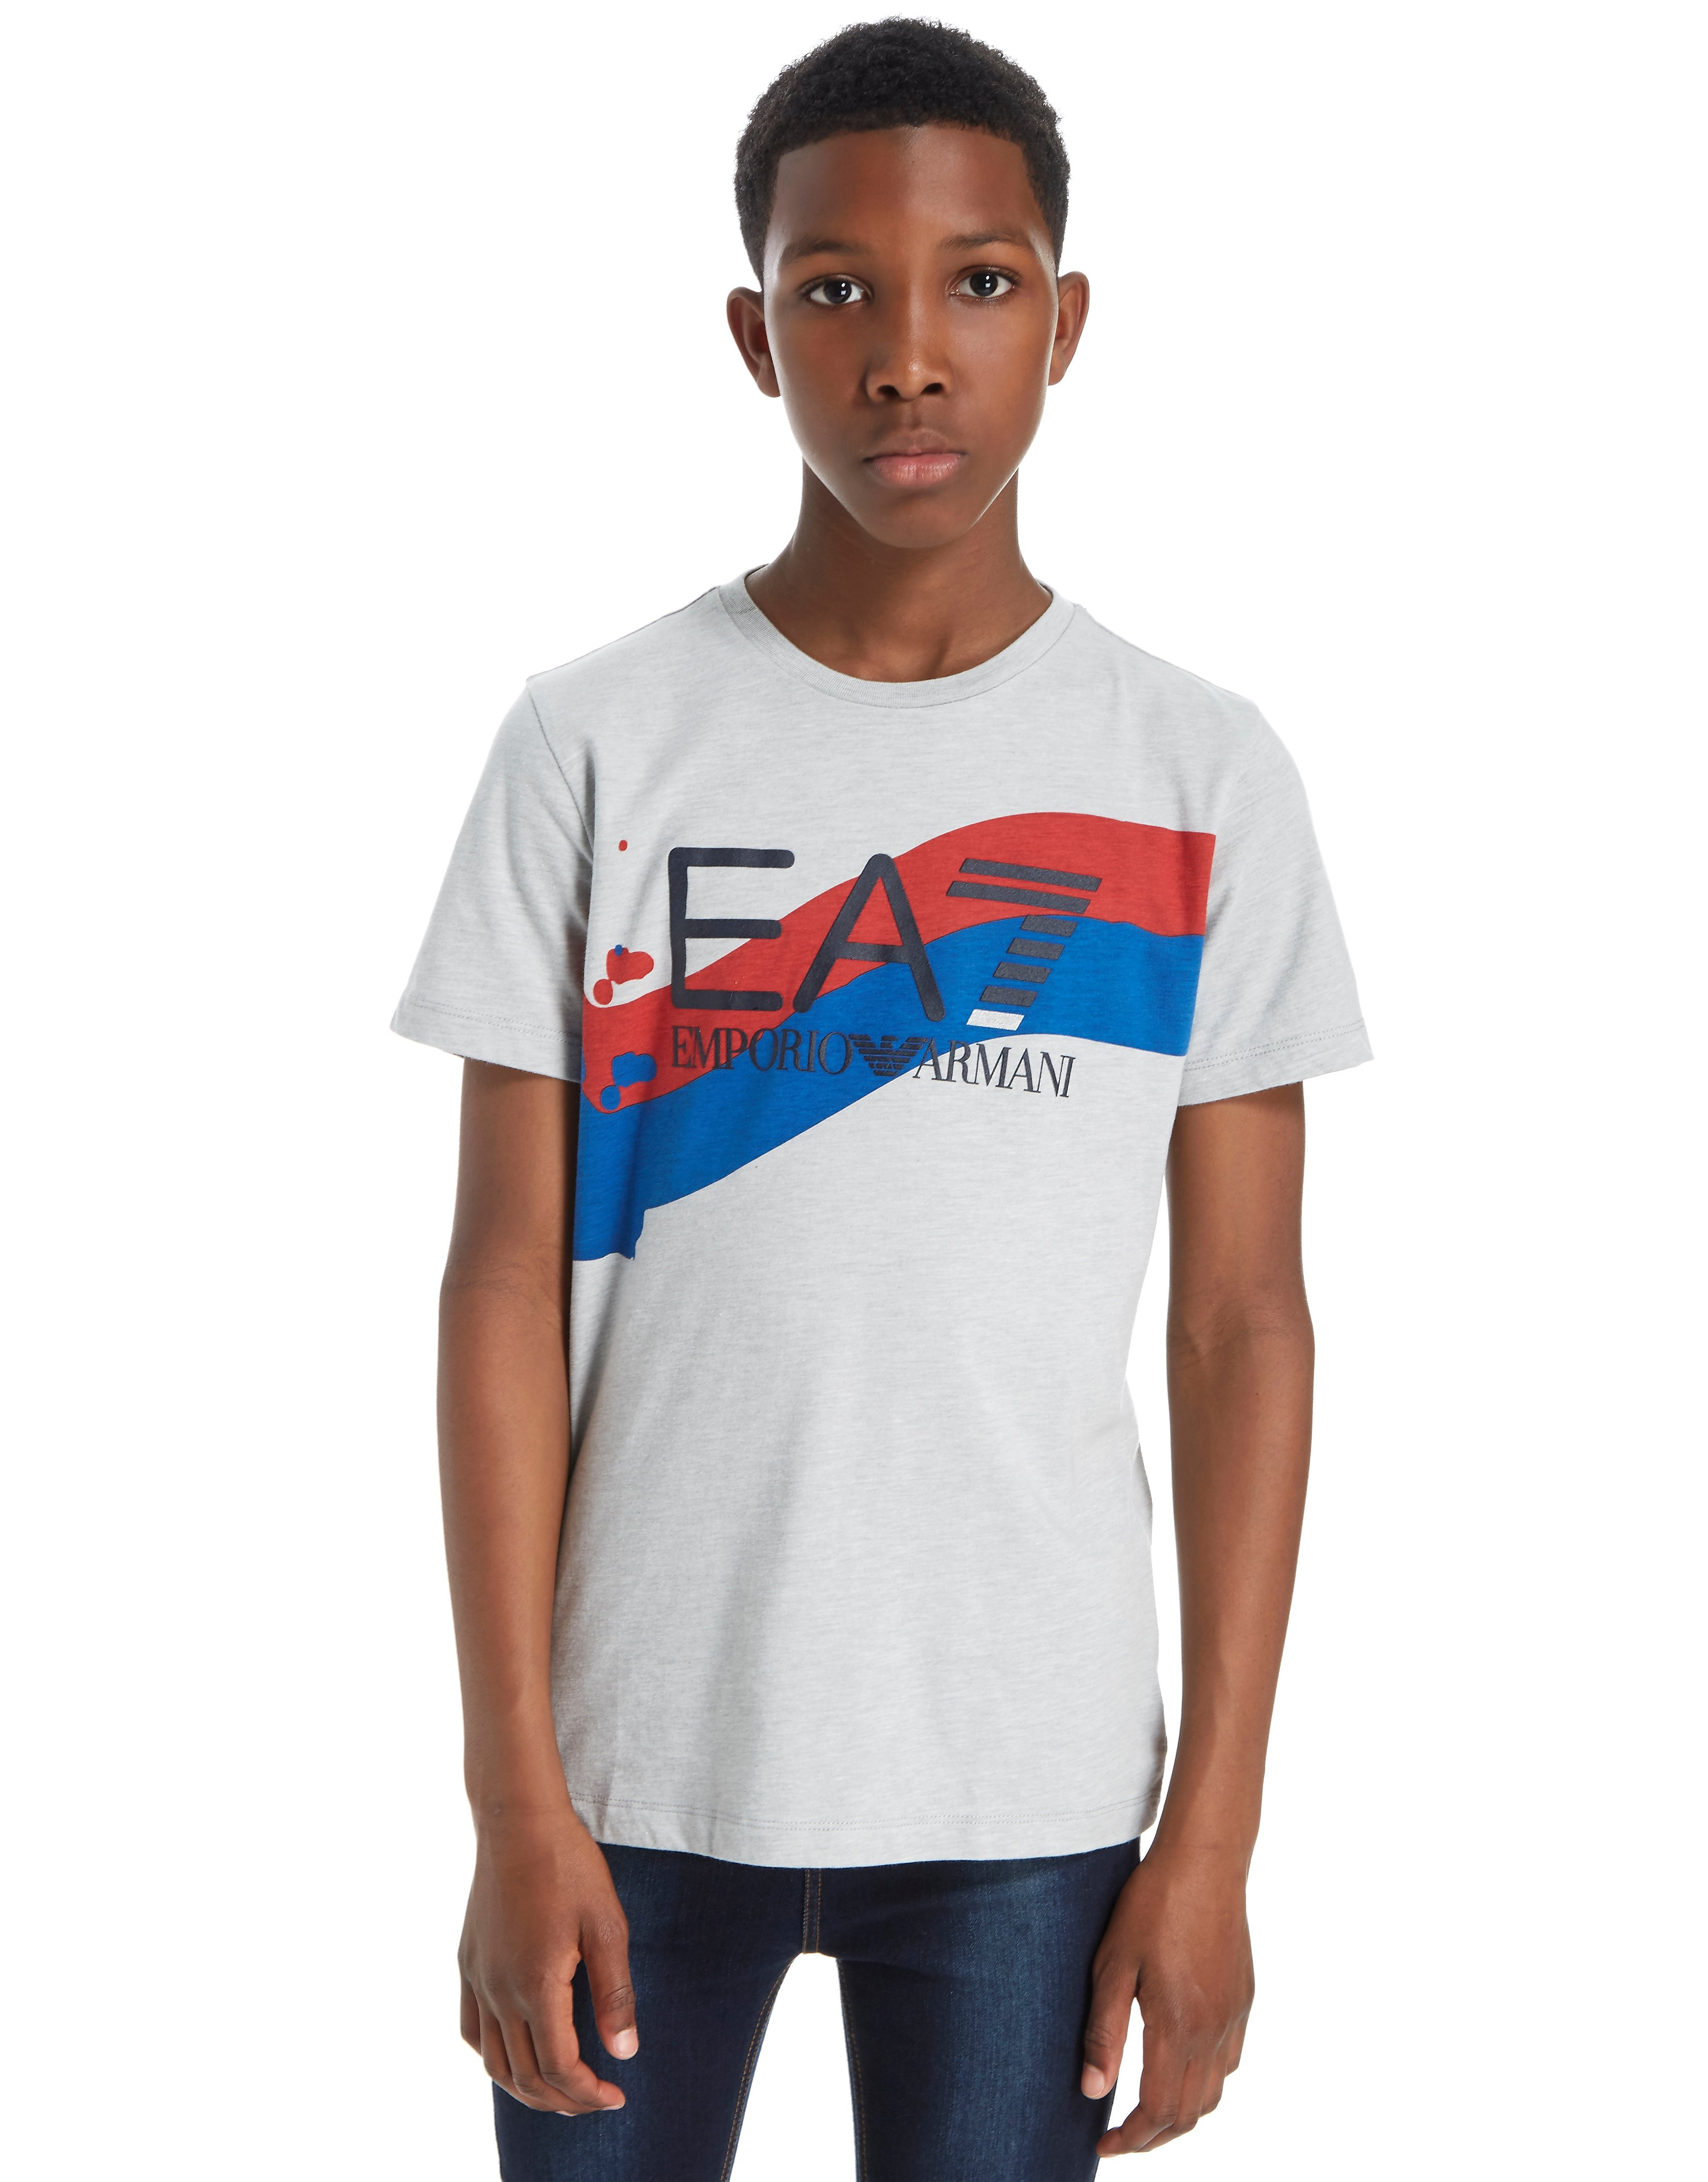 Emporio Armani EA7 T-shirt Graphic Junior